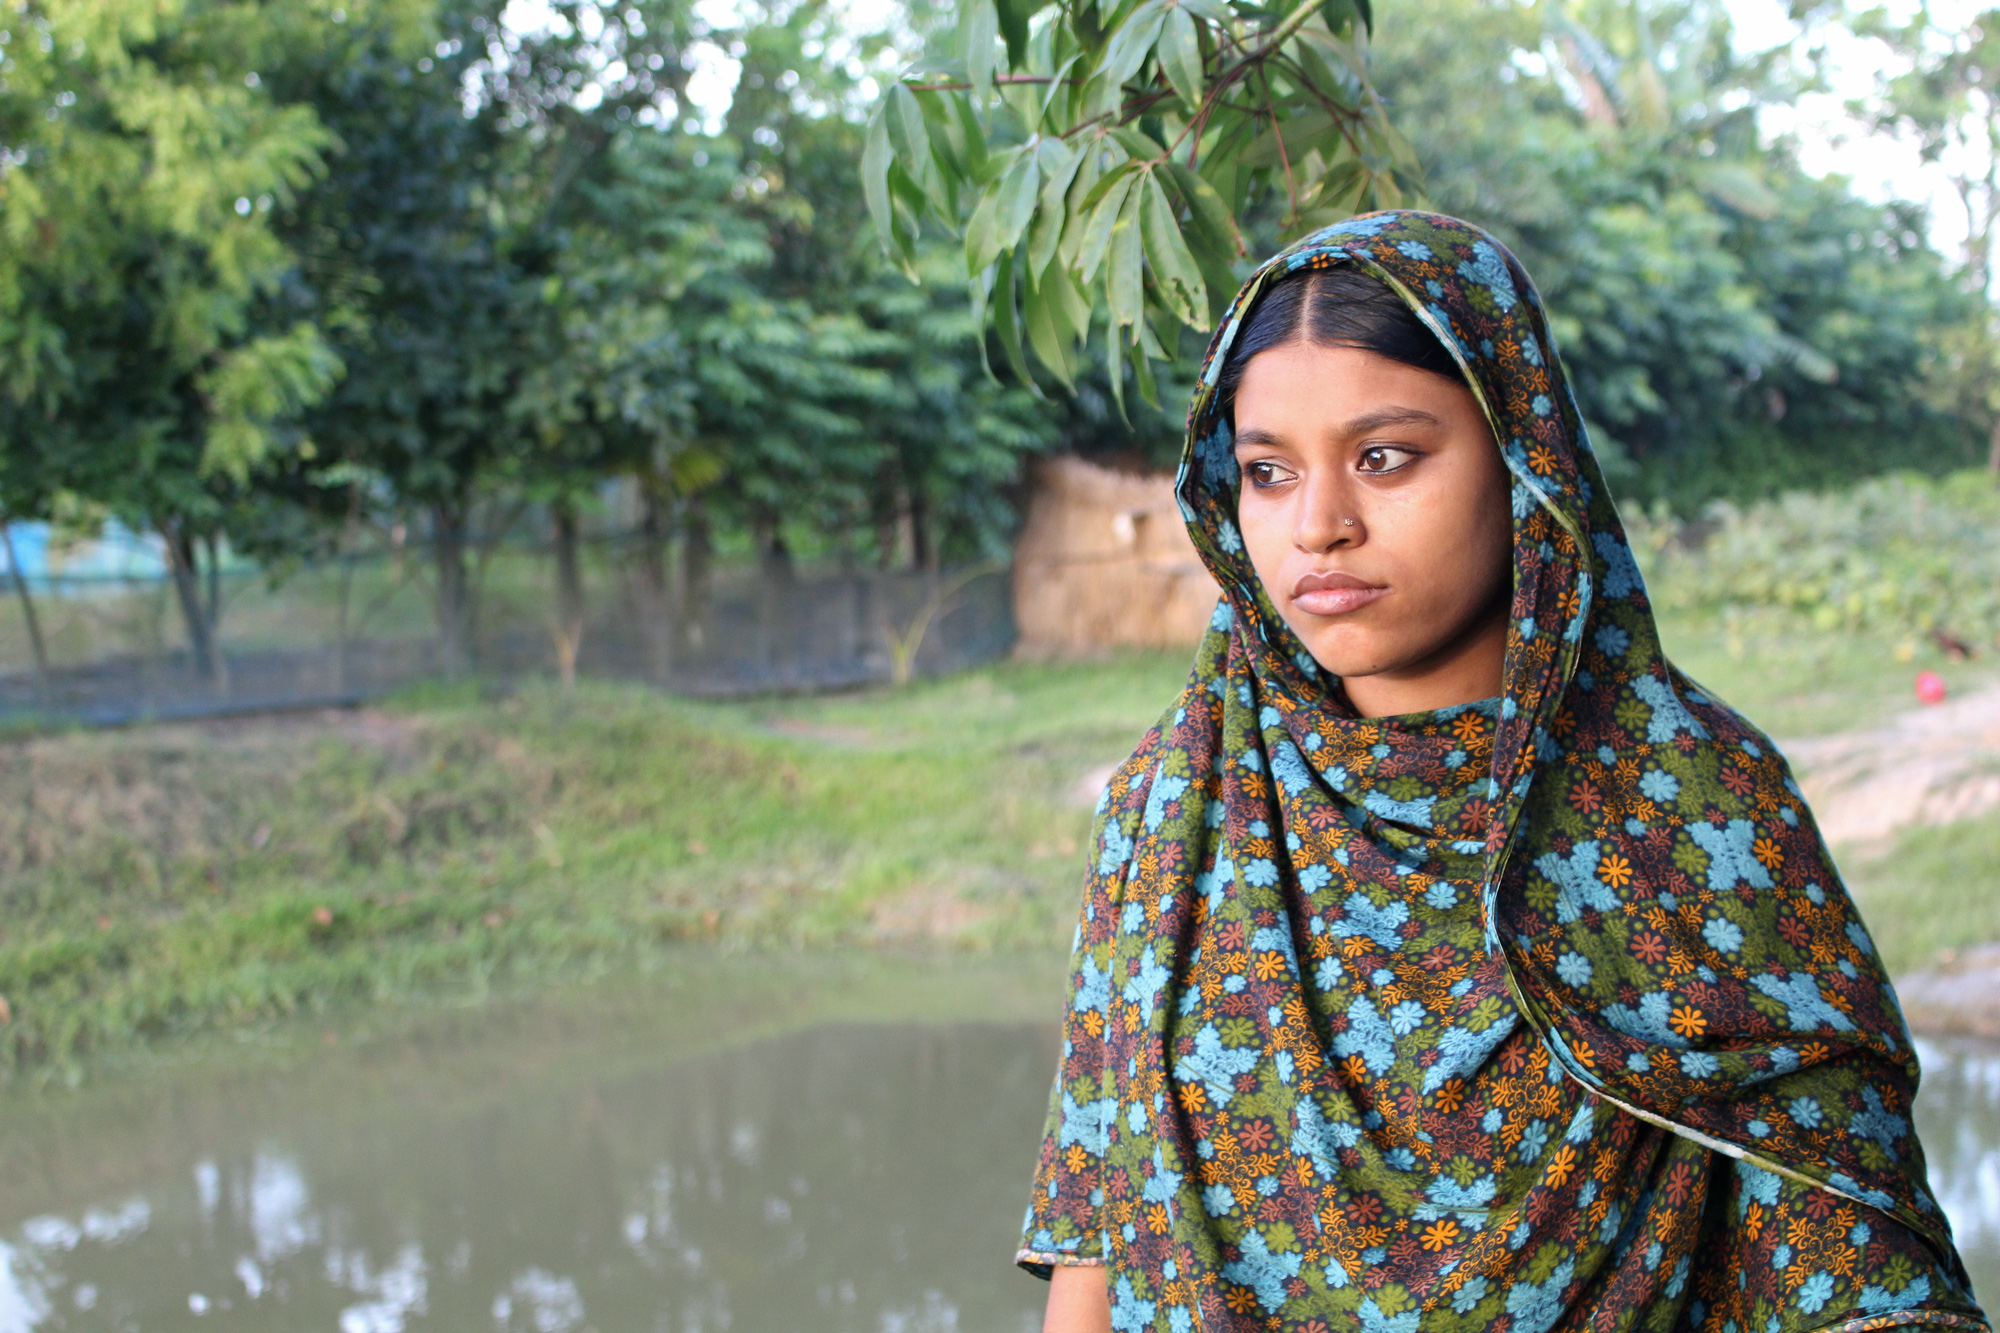 Shahina Begum, 18, moved to Kochukhali village when she got married at the age of 12. While her husband is away most of the year in Dhaka, she lives with his parents who keep strict tabs on her whereabouts. (Photo by Neha Thirani Bagri/GroundTruth)